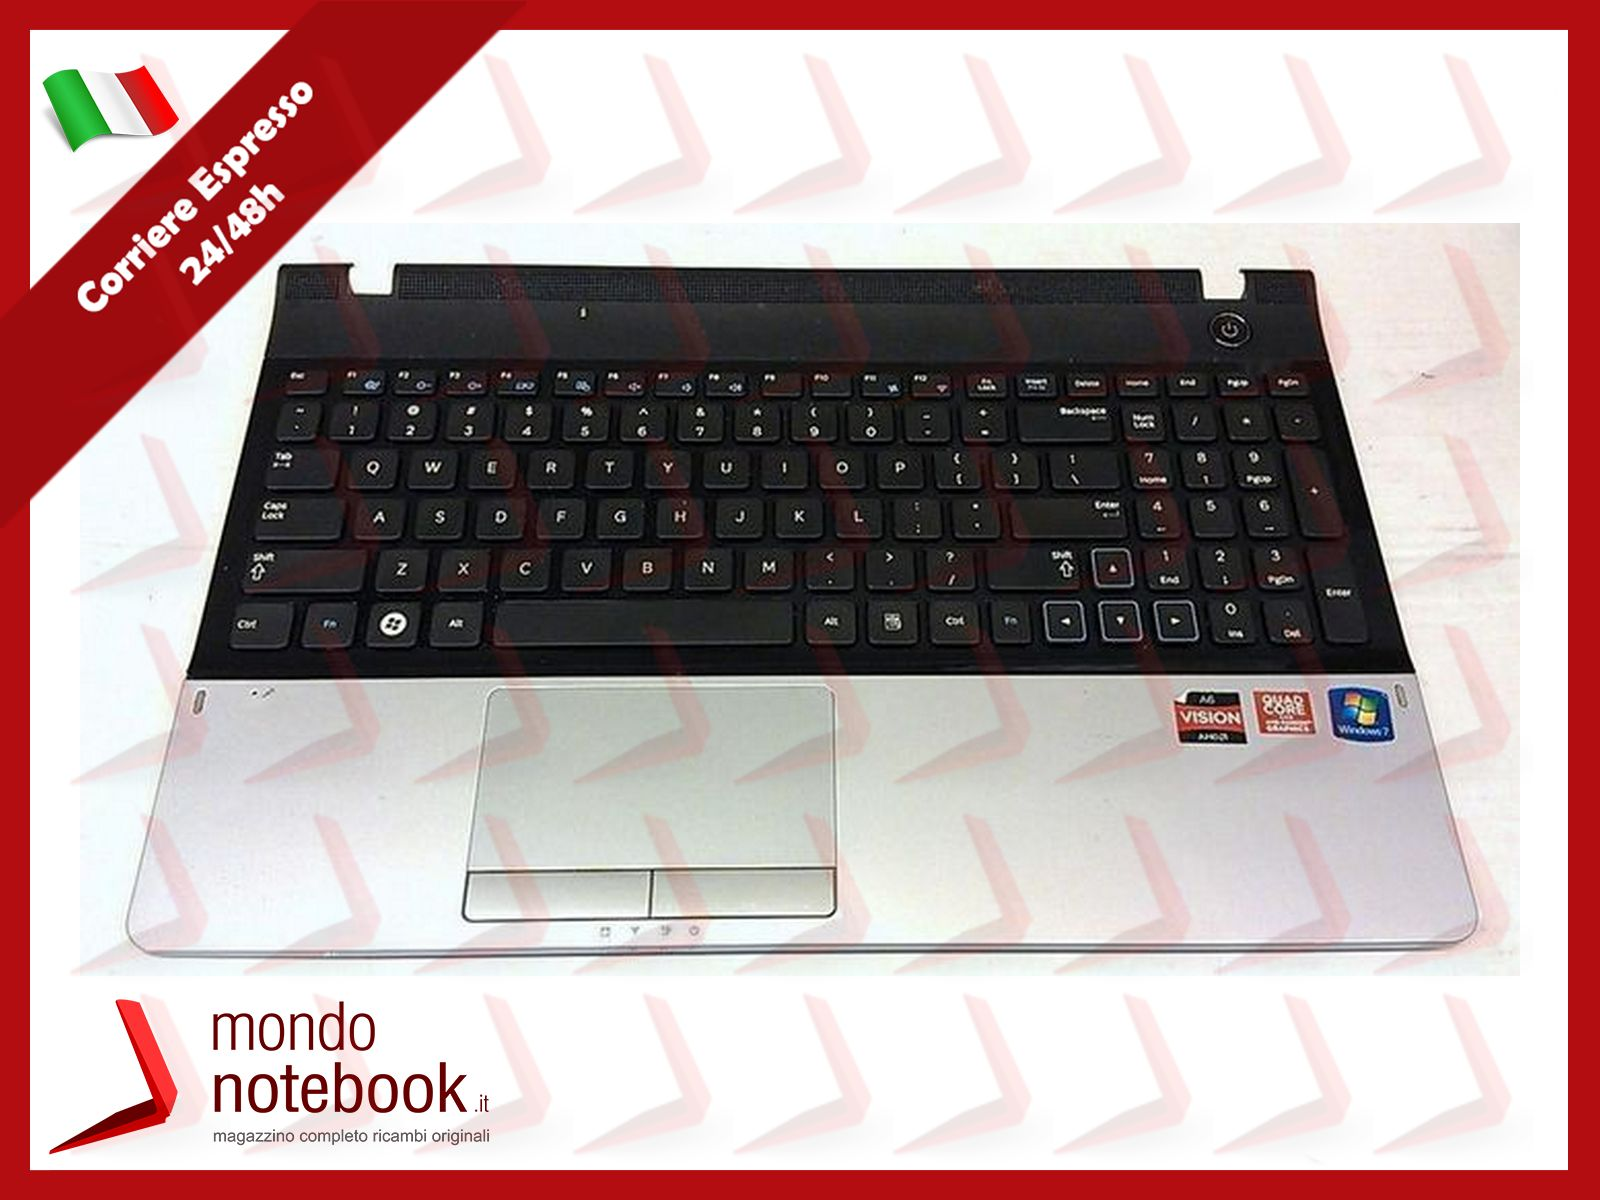 https://www.mondonotebook.it/11665/top-case-scocca-superiore-toshiba-satellite-l750d-l755-s5153.jpg